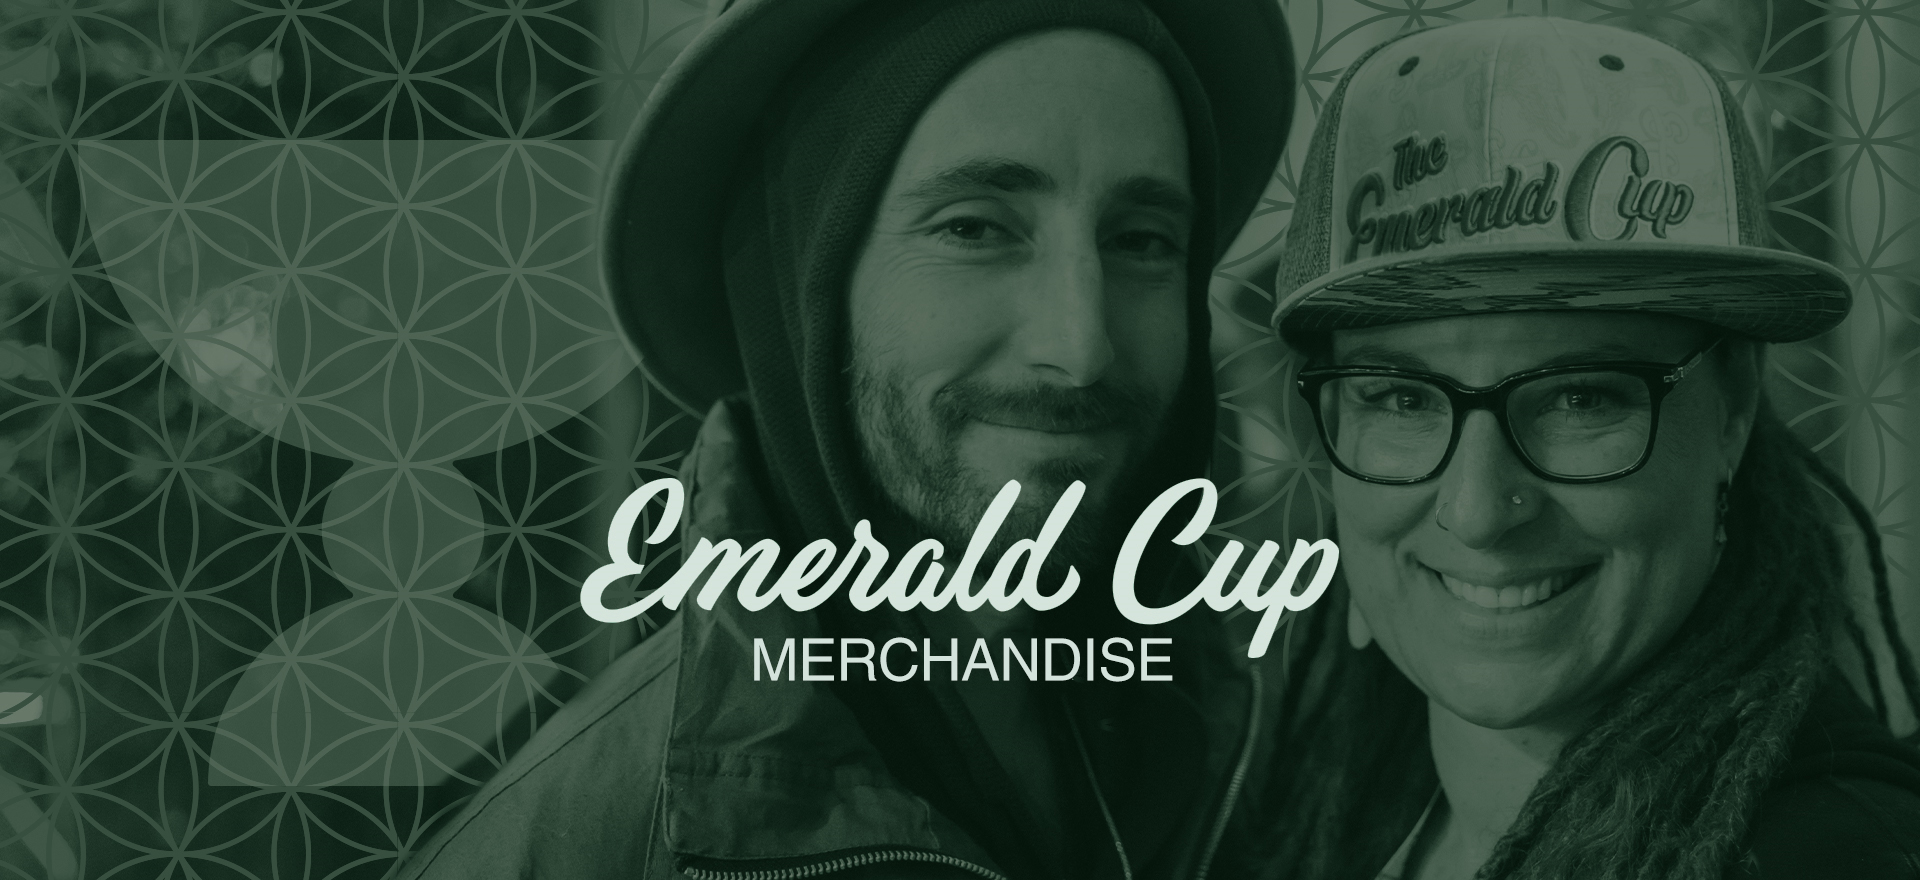 Welcome to the Emerald Cup Store